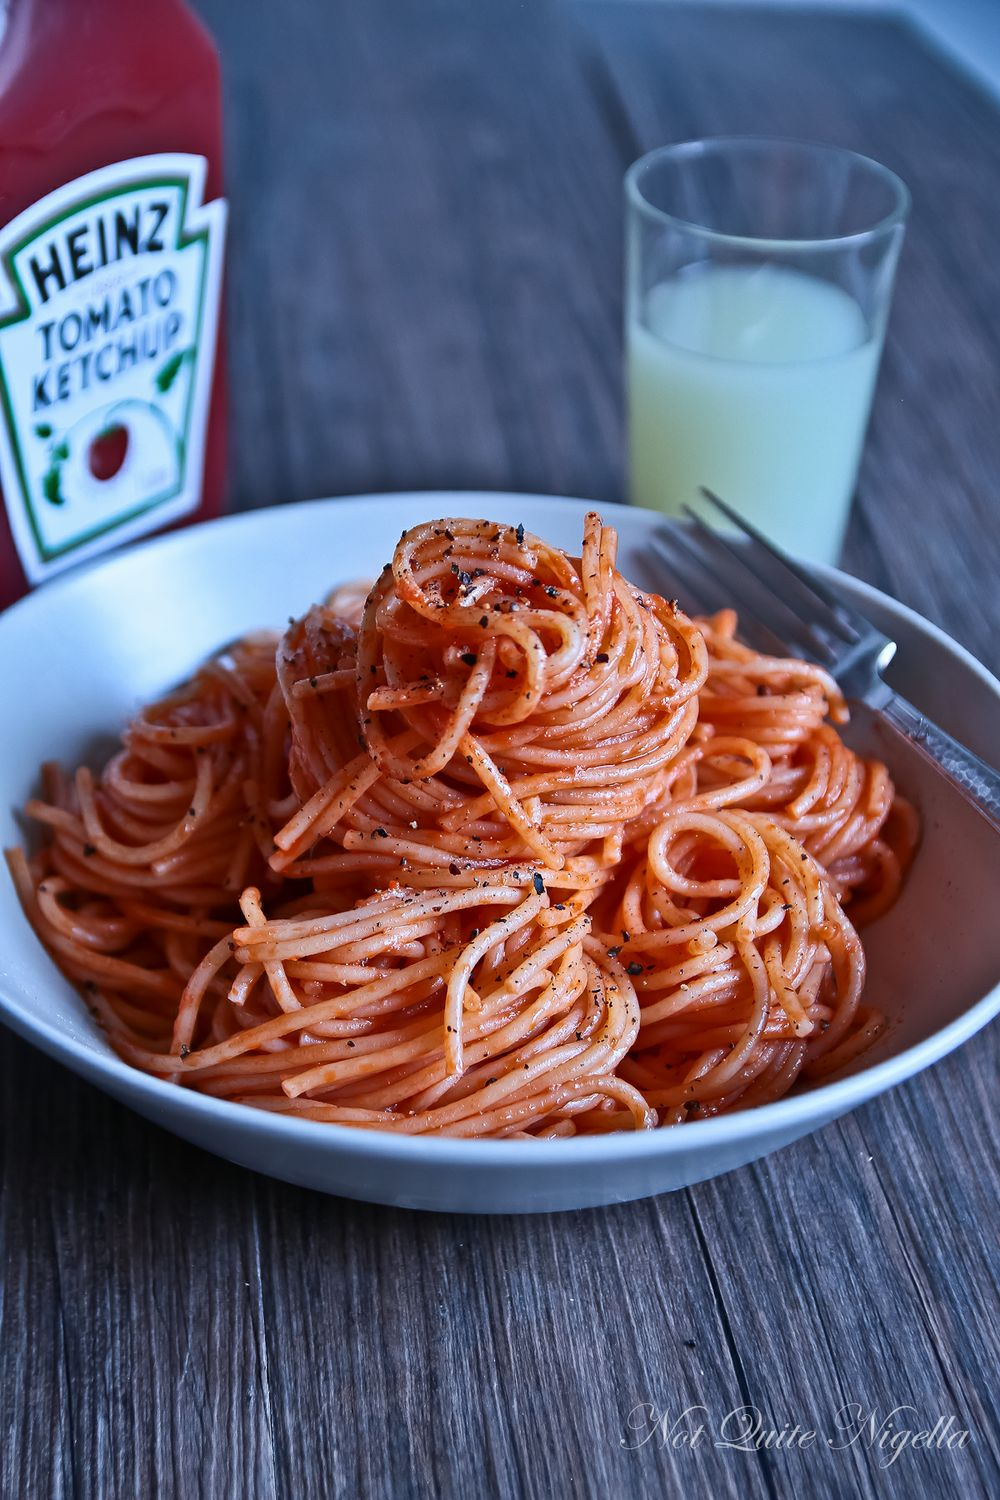 sketti with ketchup